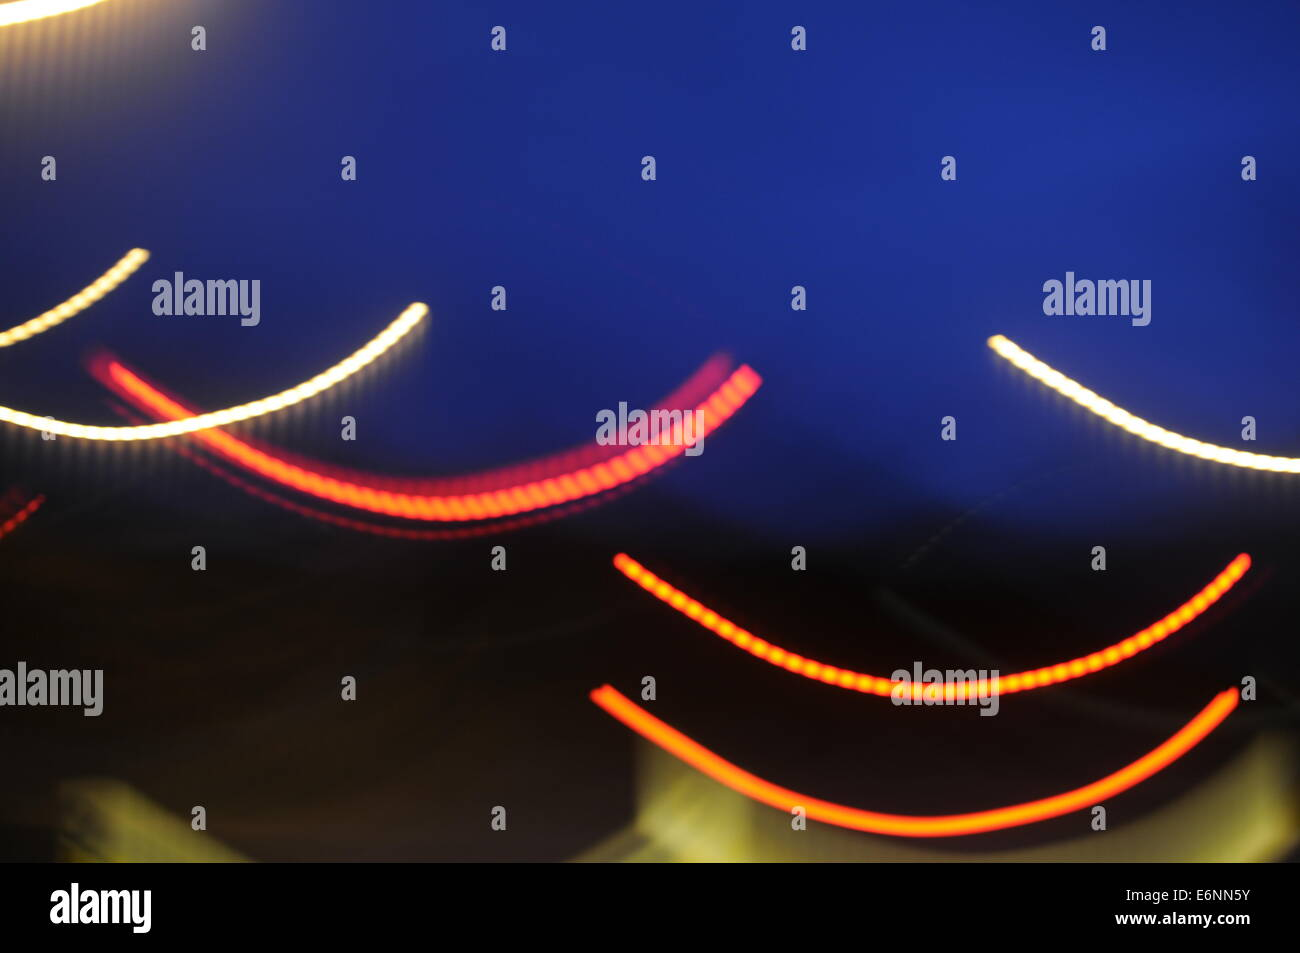 different coloured curved light trails - Stock Image